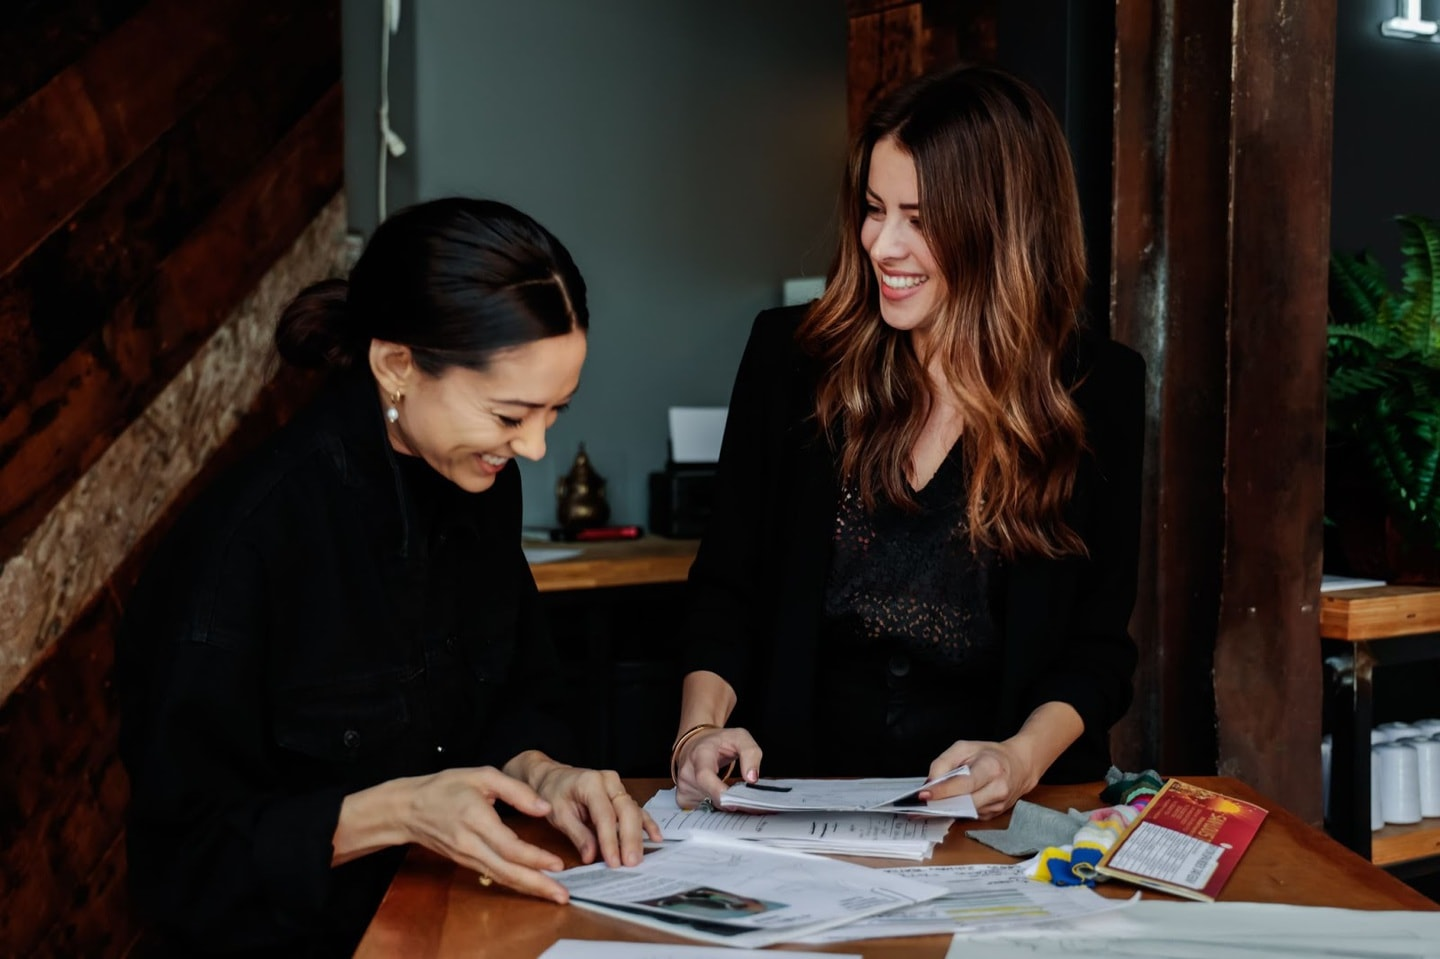 Two clothing manufacturers laughing while designing a clothing line